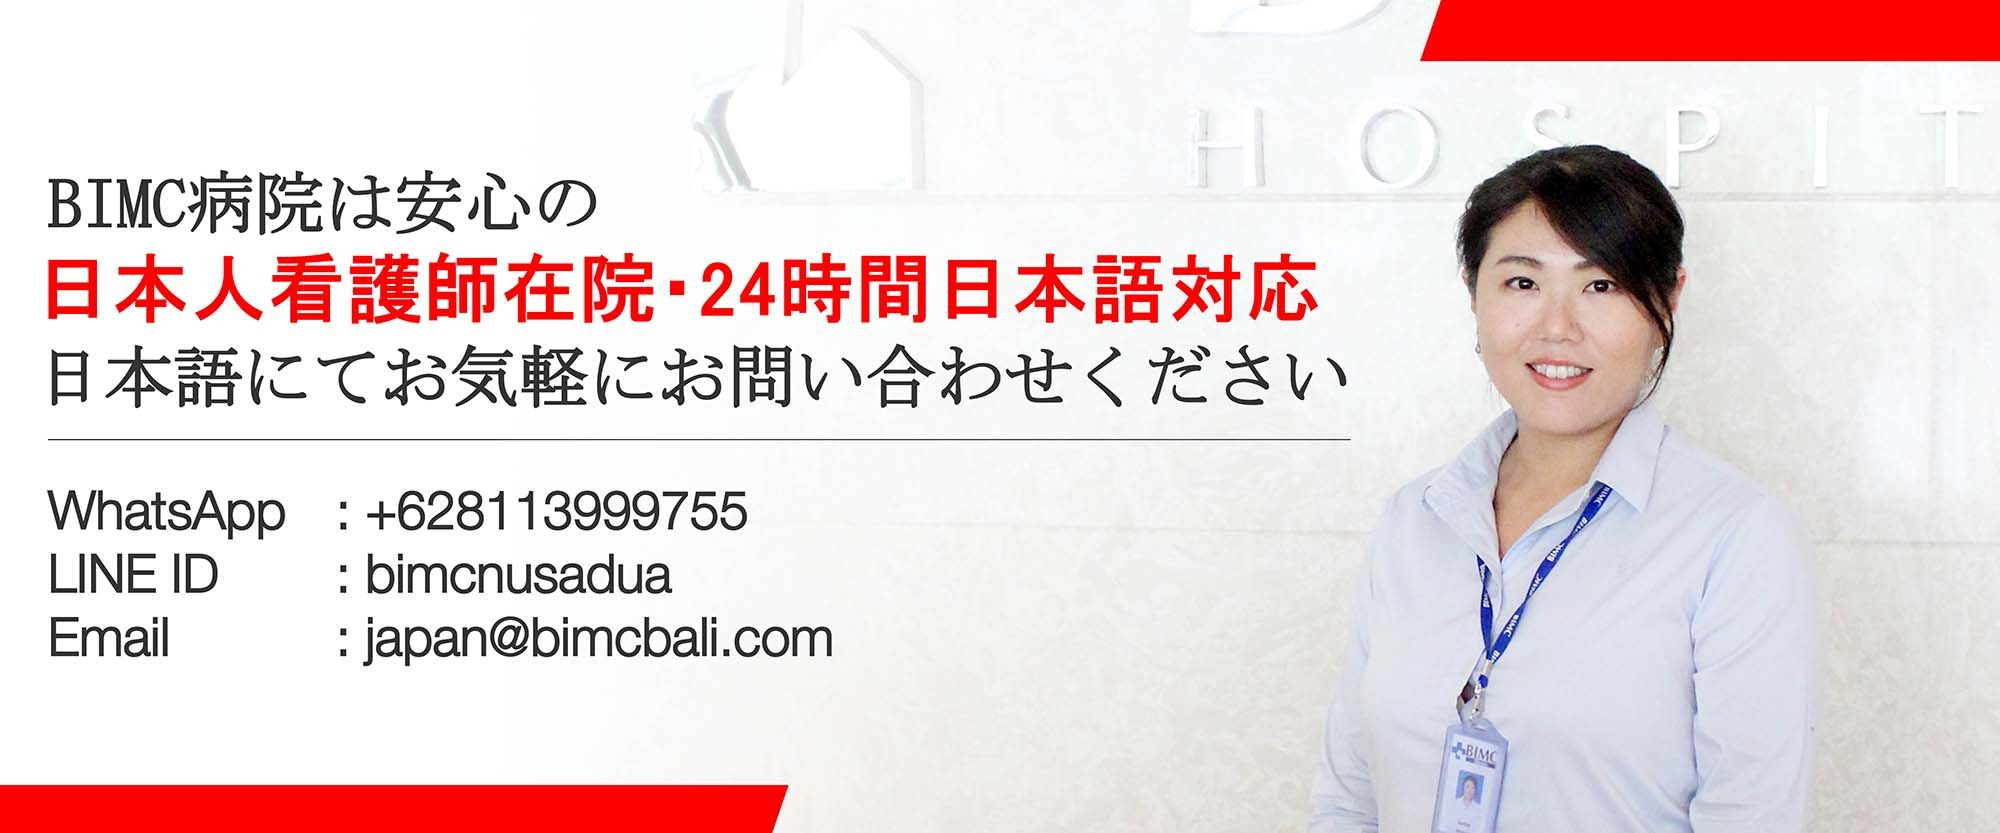 Bimcsiloam Header Slideshow Website Japan Upload New